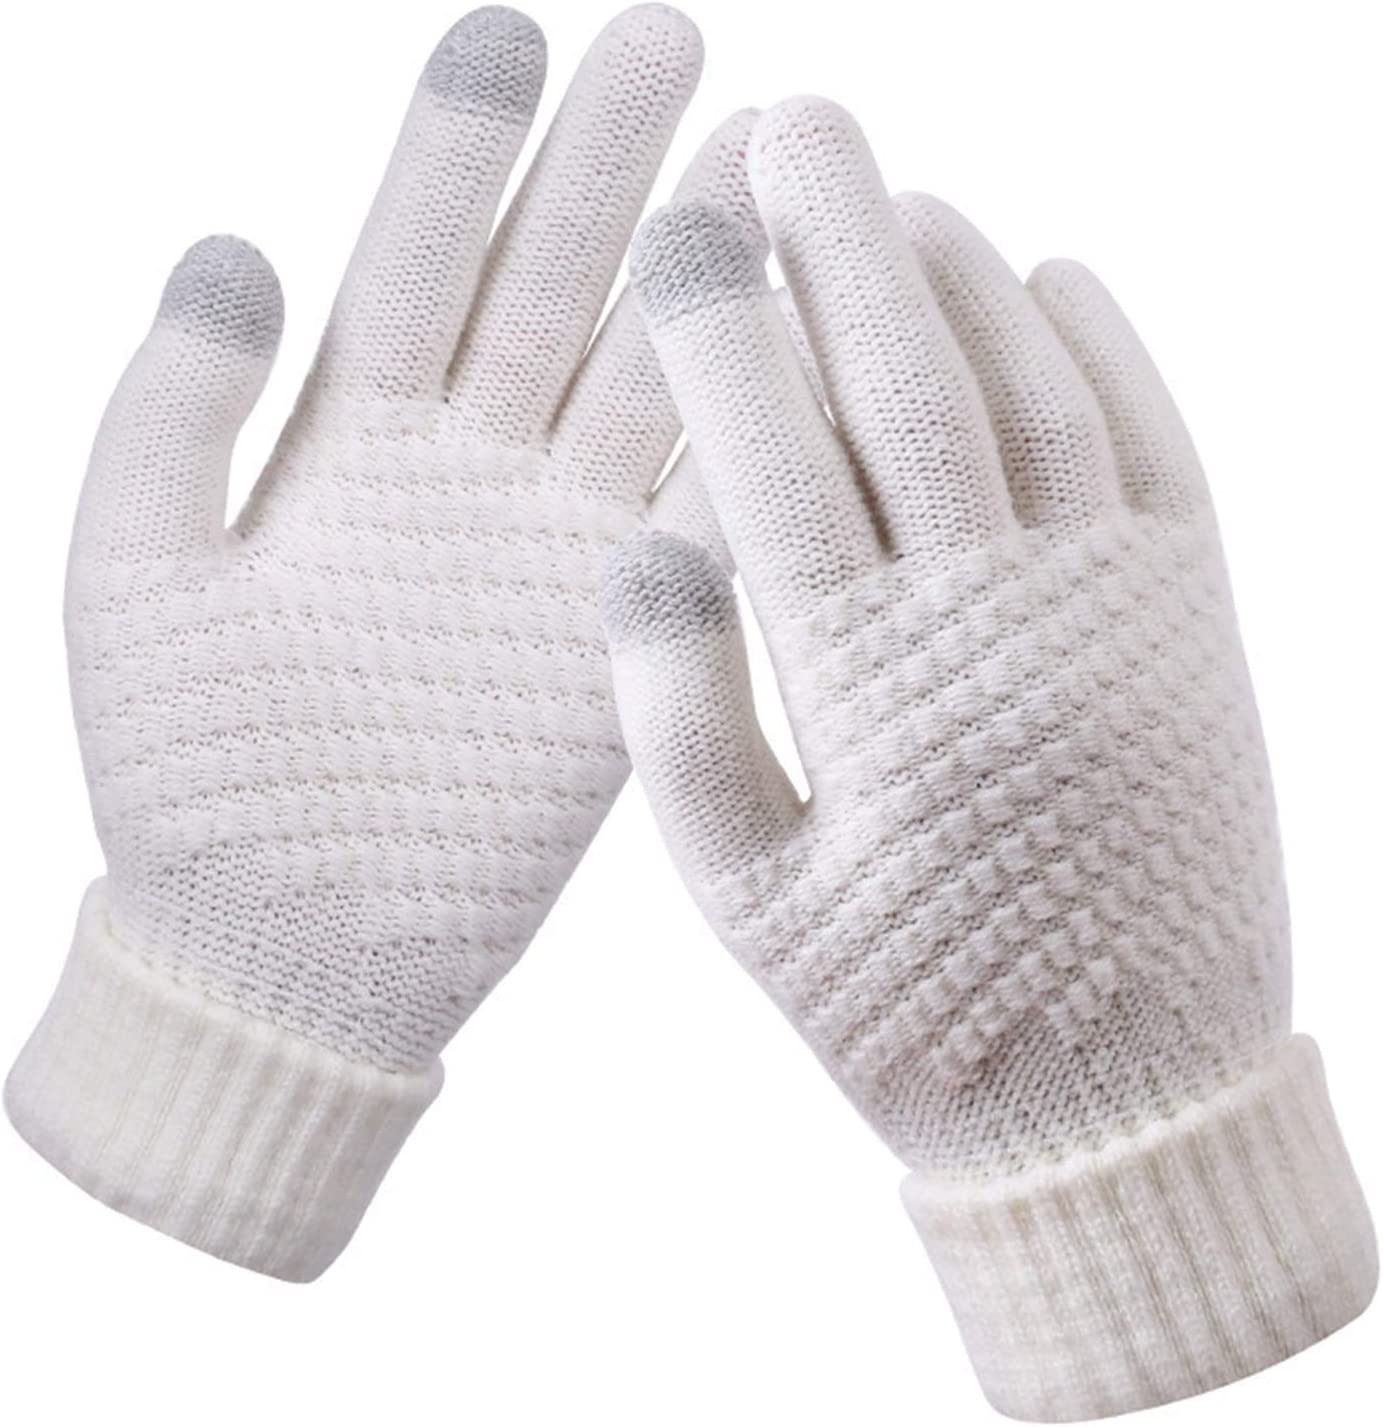 FSJIANGYUE Winter Gloves 2021 New Women's Cashmere Wool Knitted Gloves Winter Warm Thick Touch Screen Gloves (Color : White) (Color : Pink, Size : -)